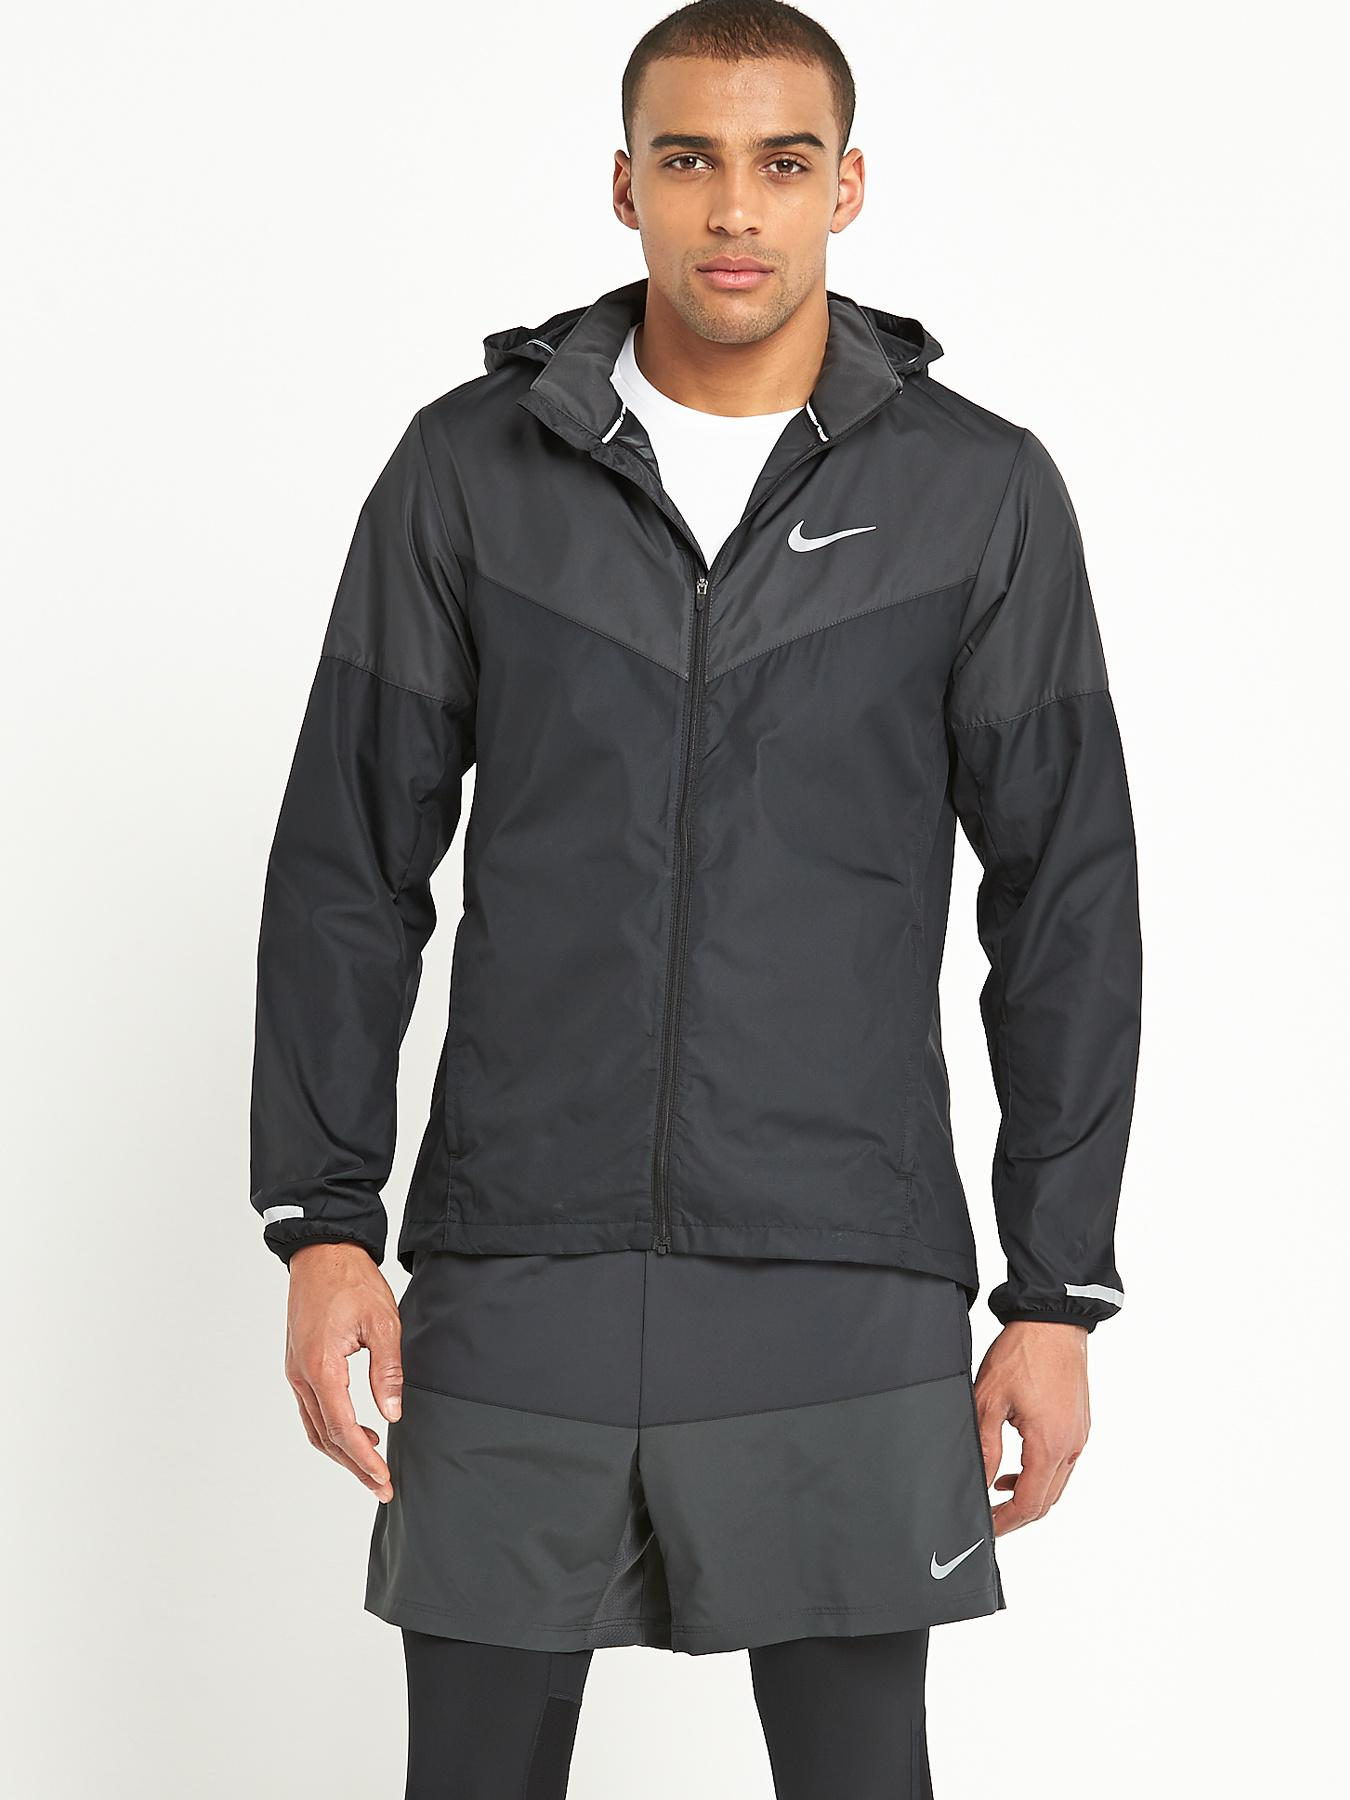 Nike Mens Vapor Running Jacket - Black, Black